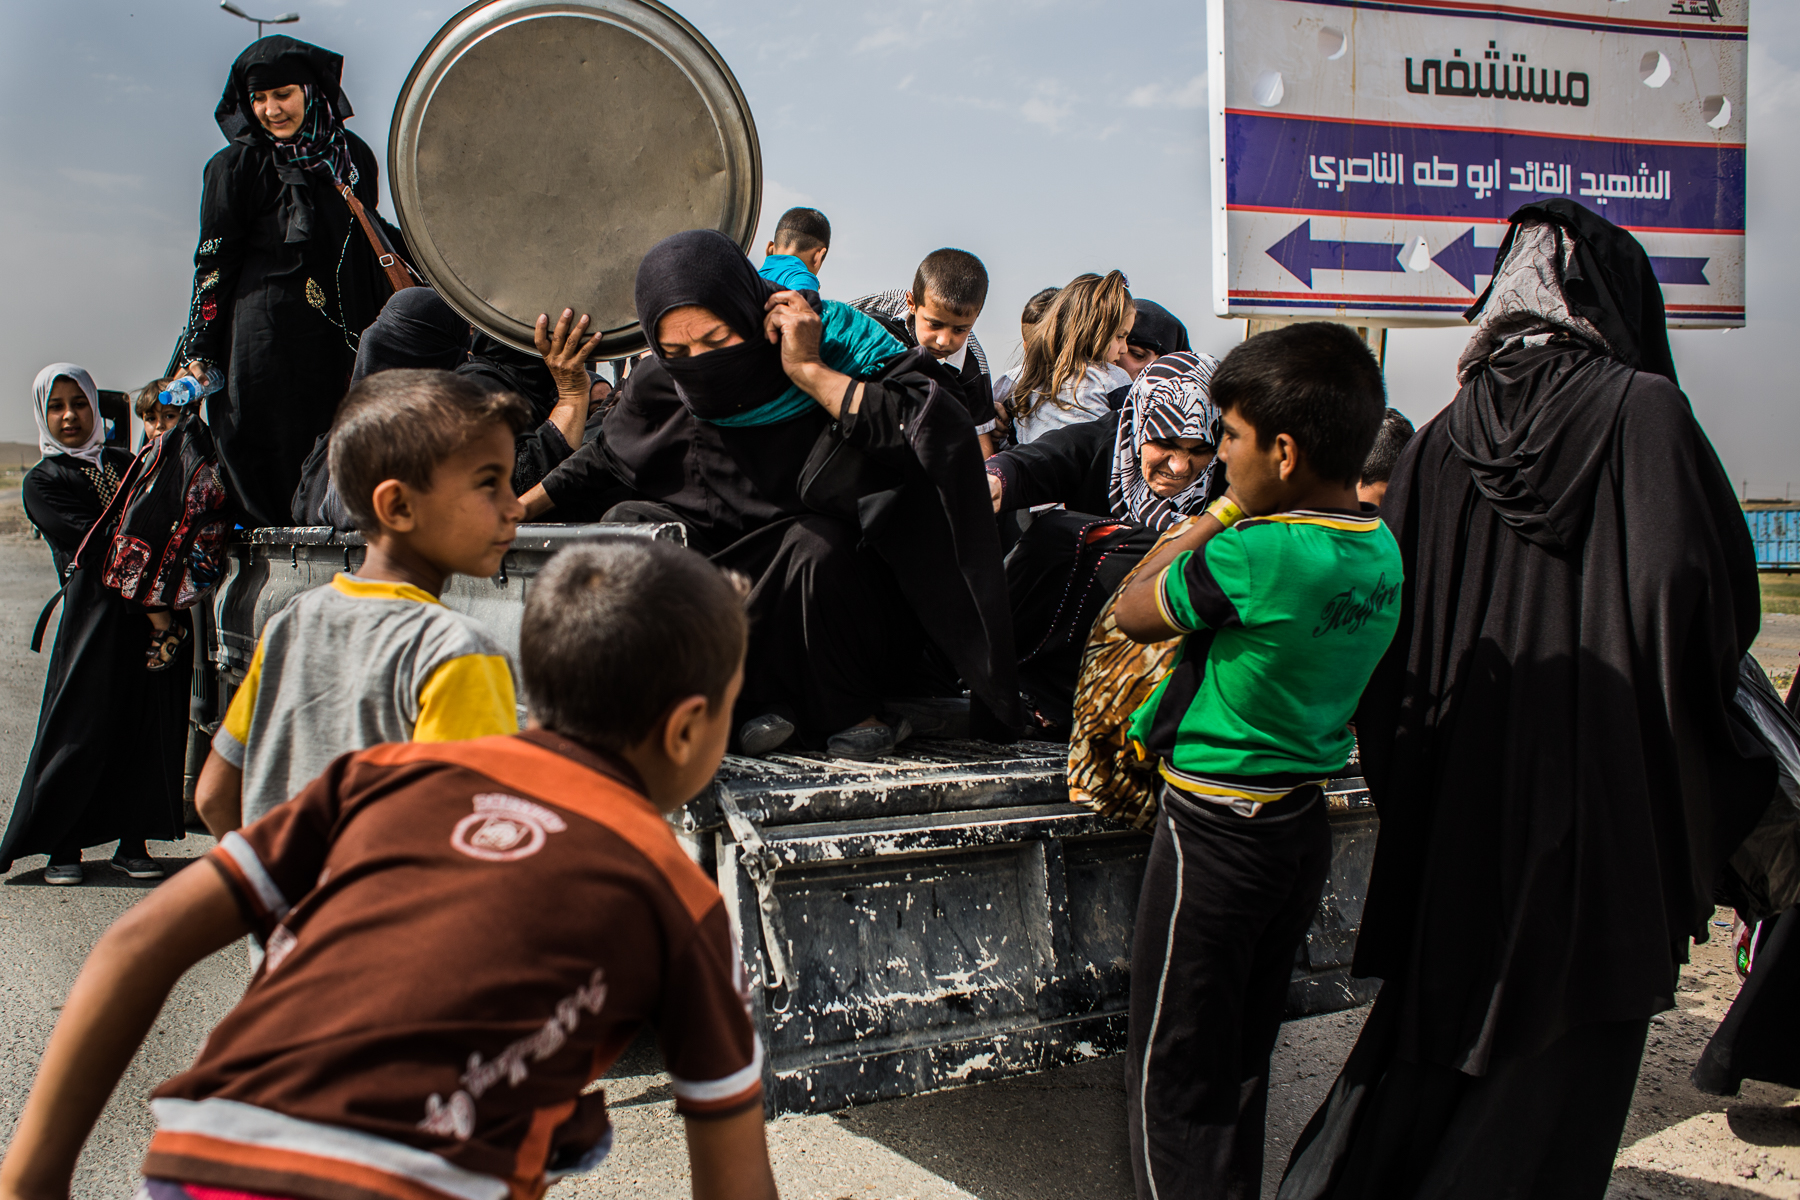 Yusuke_Suzuki_The battle for Mosul_People escaping from ISIS_02.jpg